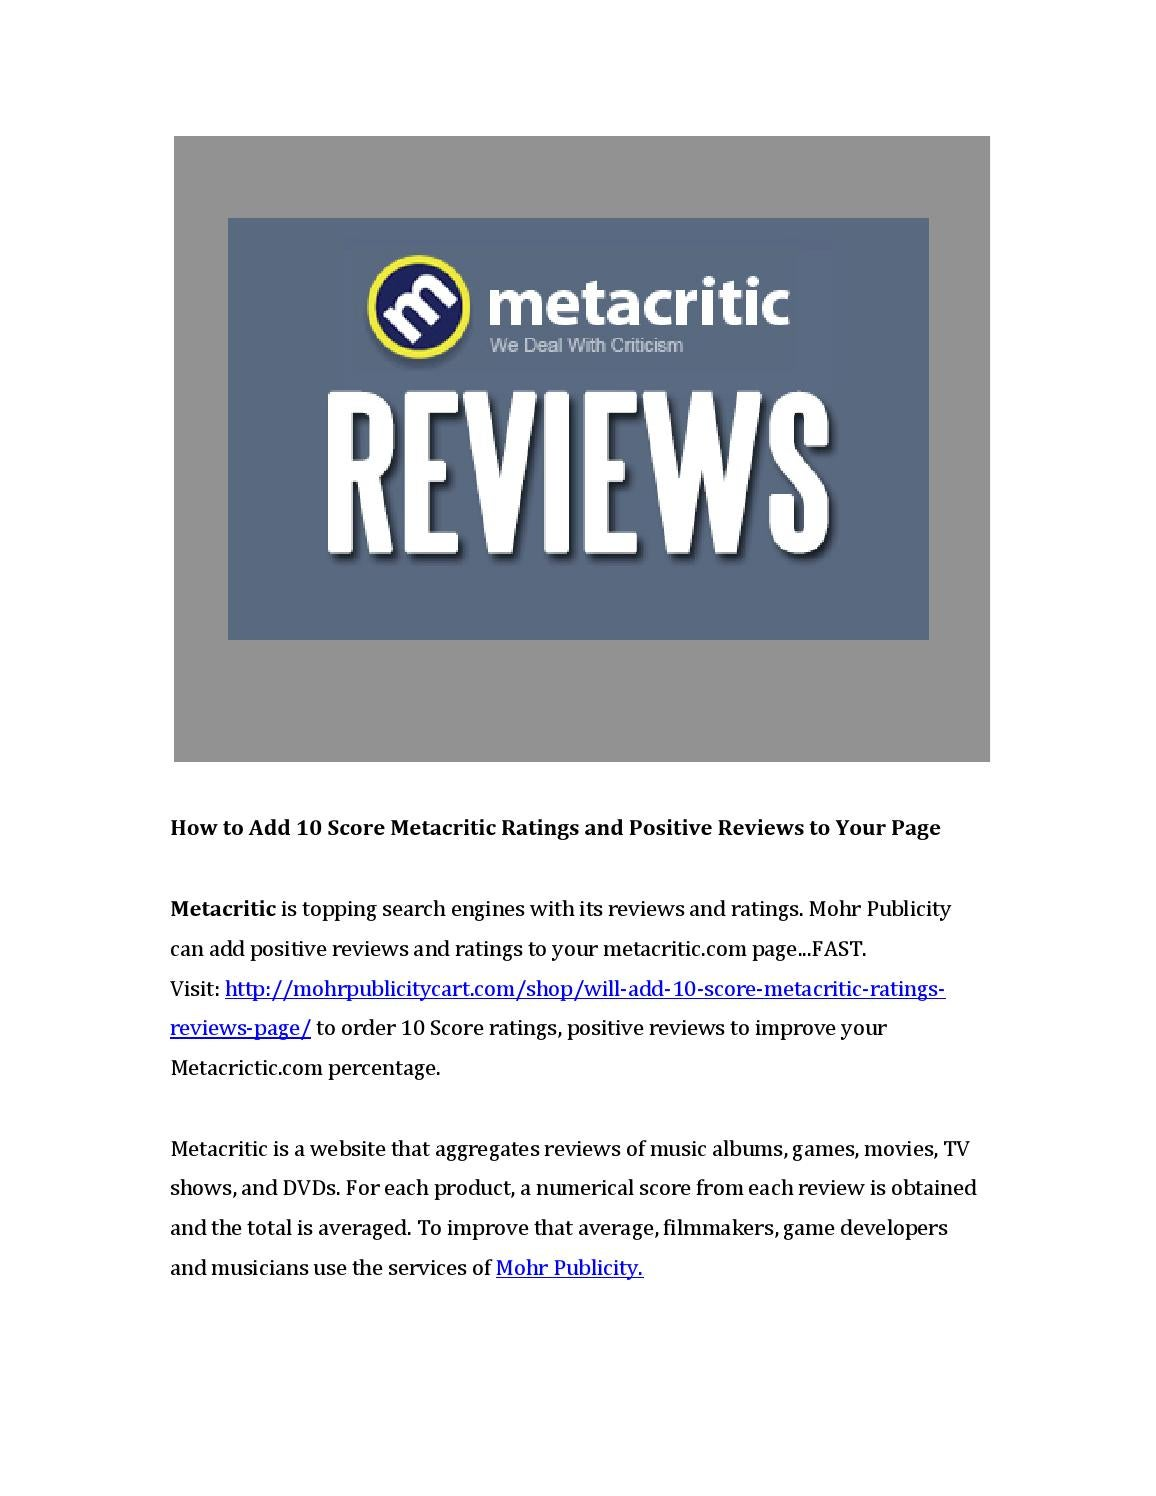 How to add 10 score metacritic ratings and positivereviews